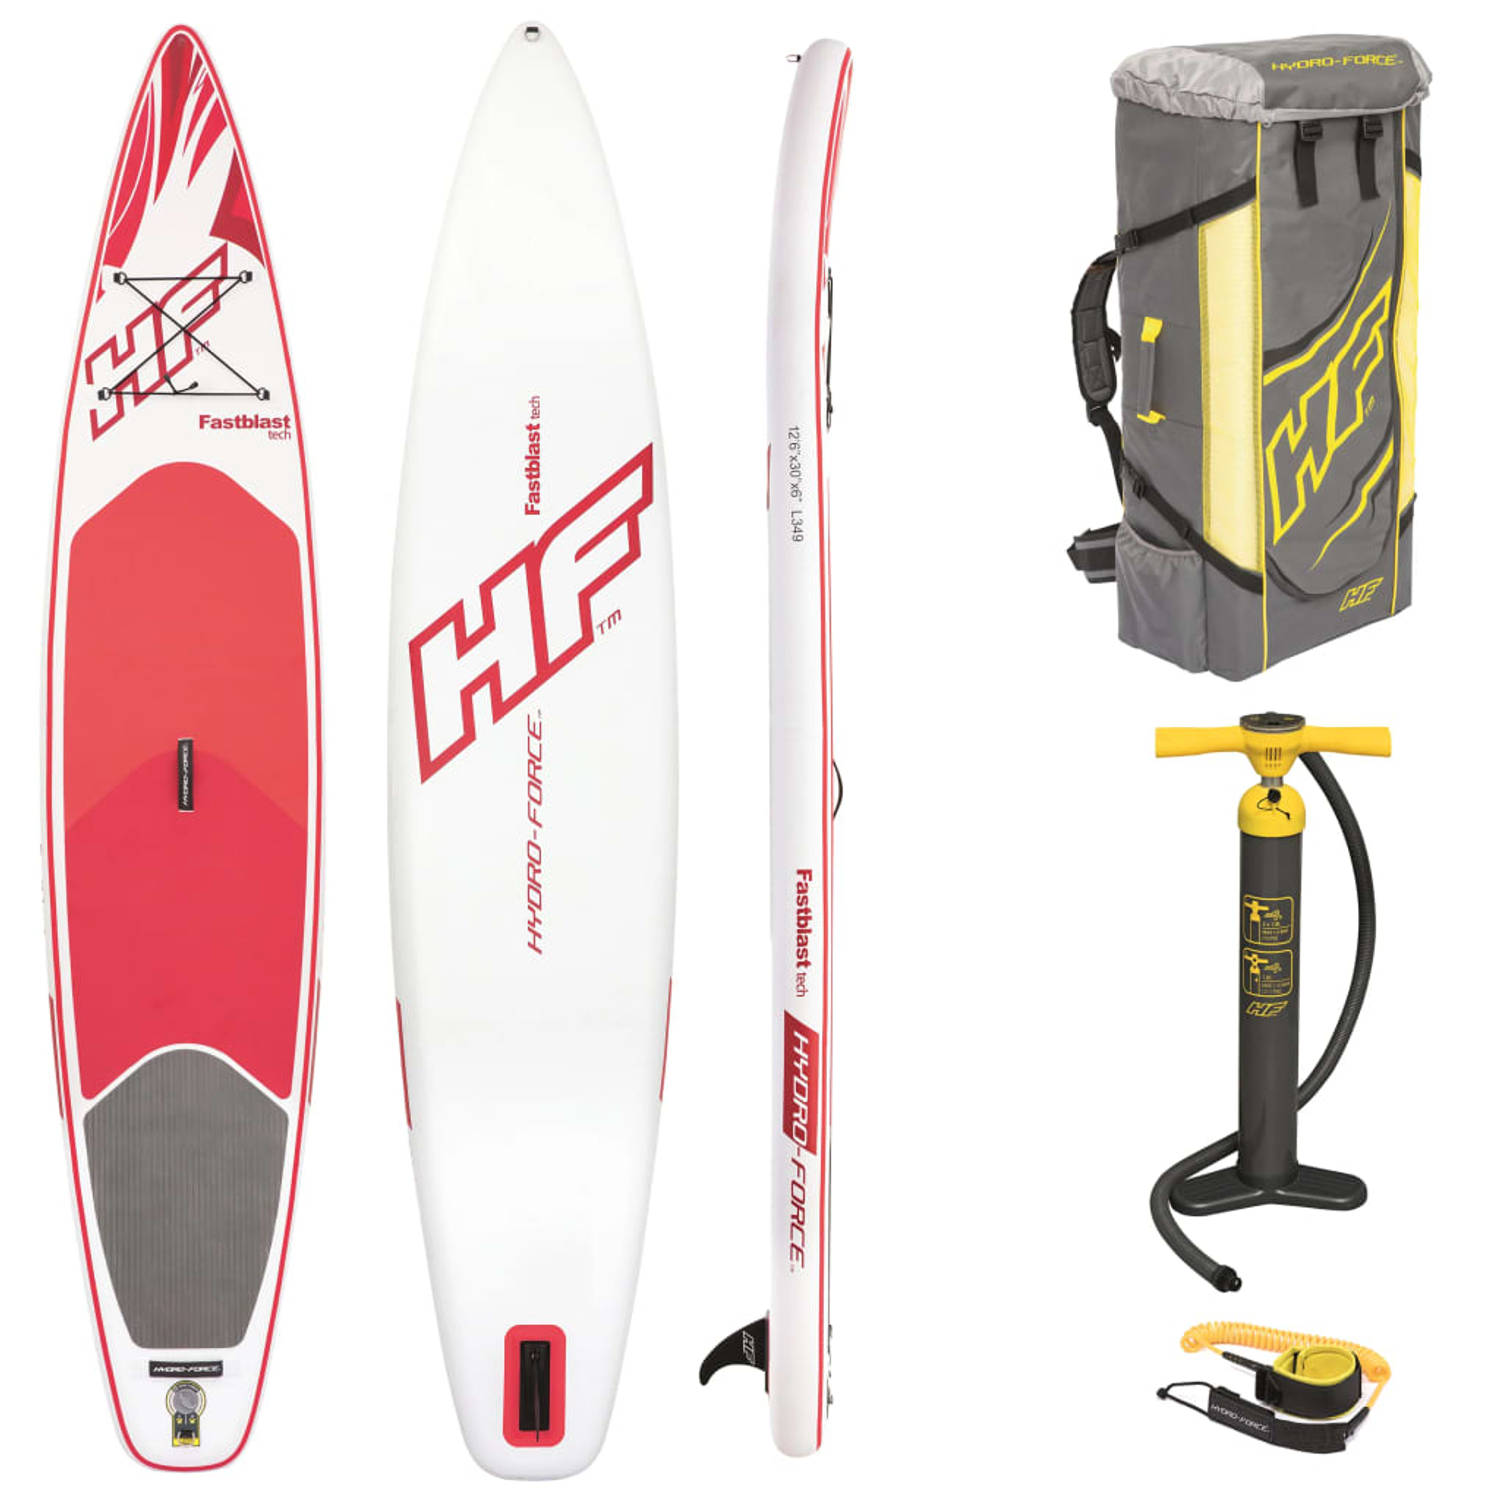 Bestway Hydro-Force SUP-set opblaasbaar Fastblast Tech 65306